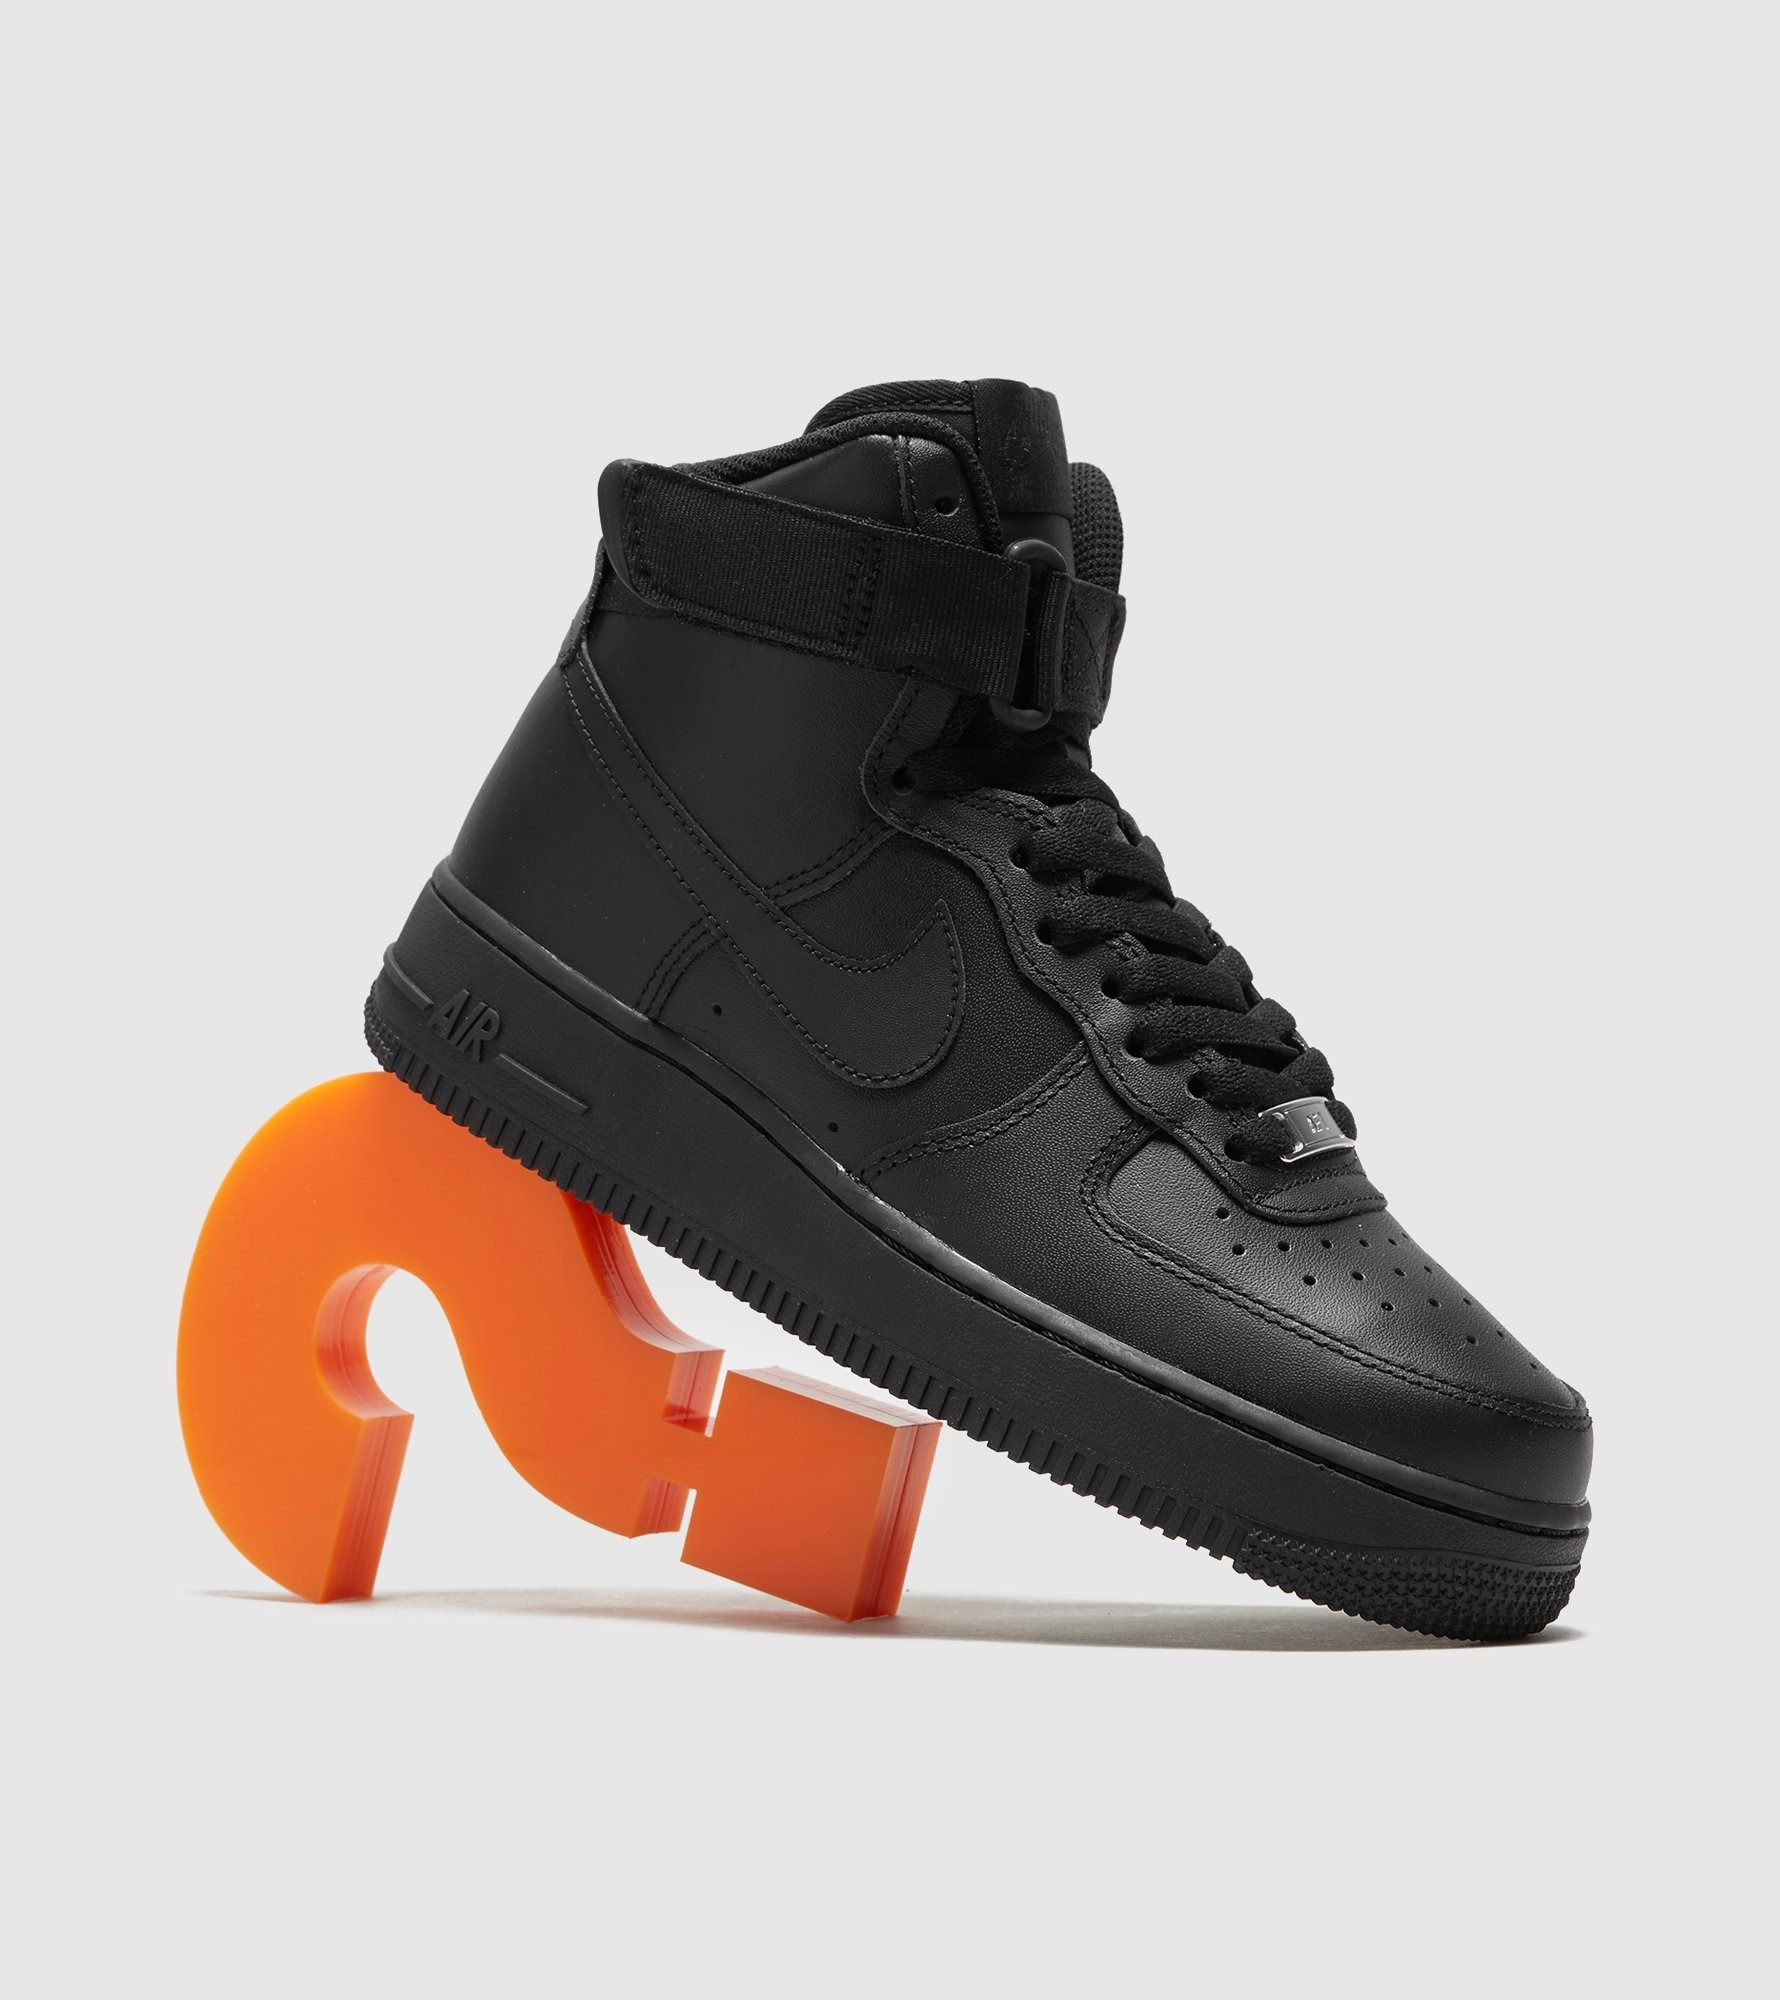 Shop online for Nike Air Force 1 High